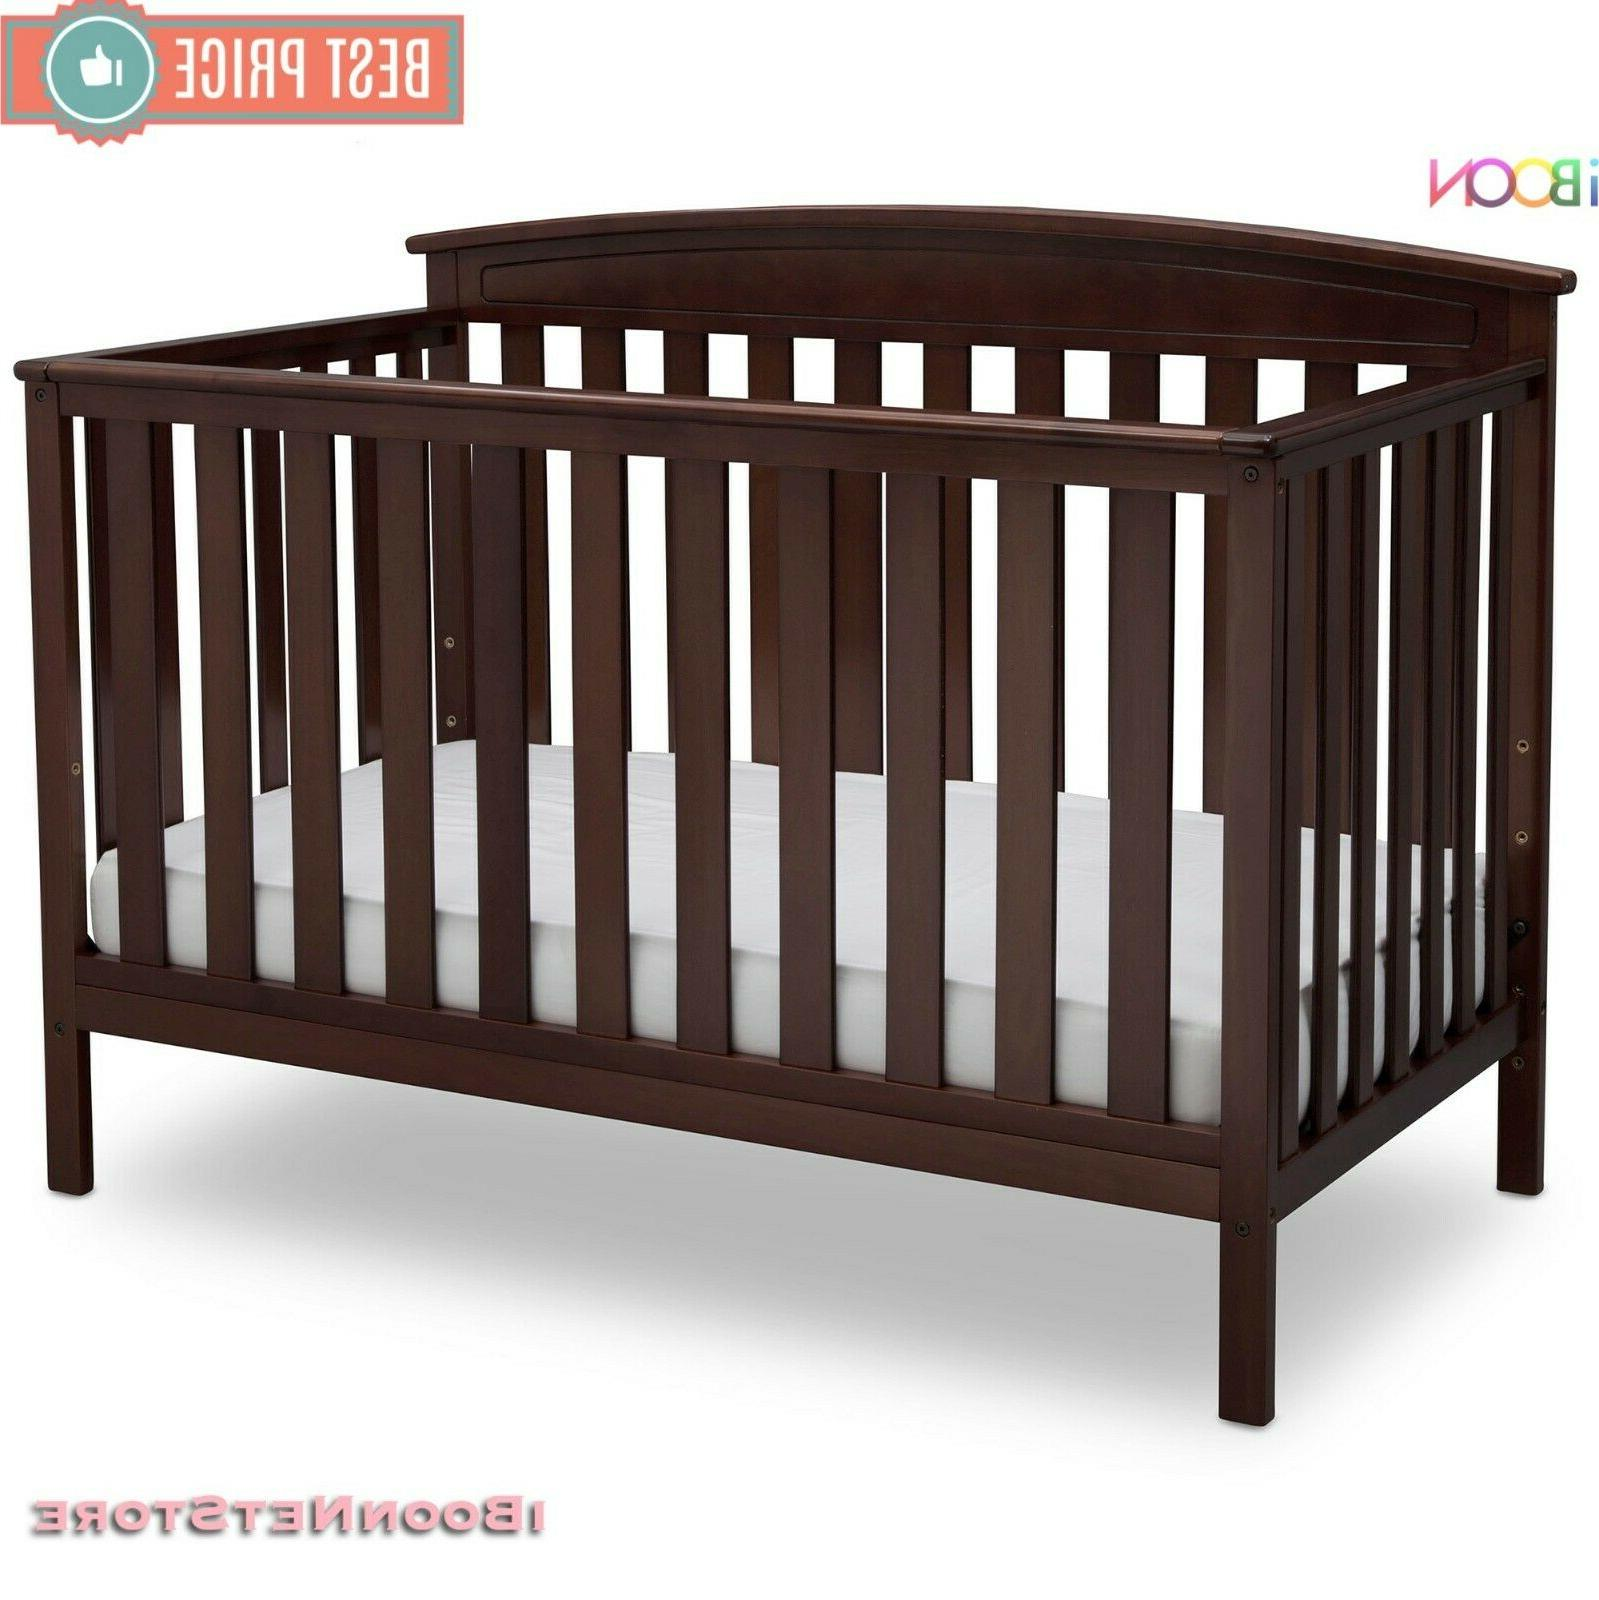 Adjustable Baby in Convertible Wood Convert Toddler BED Colors